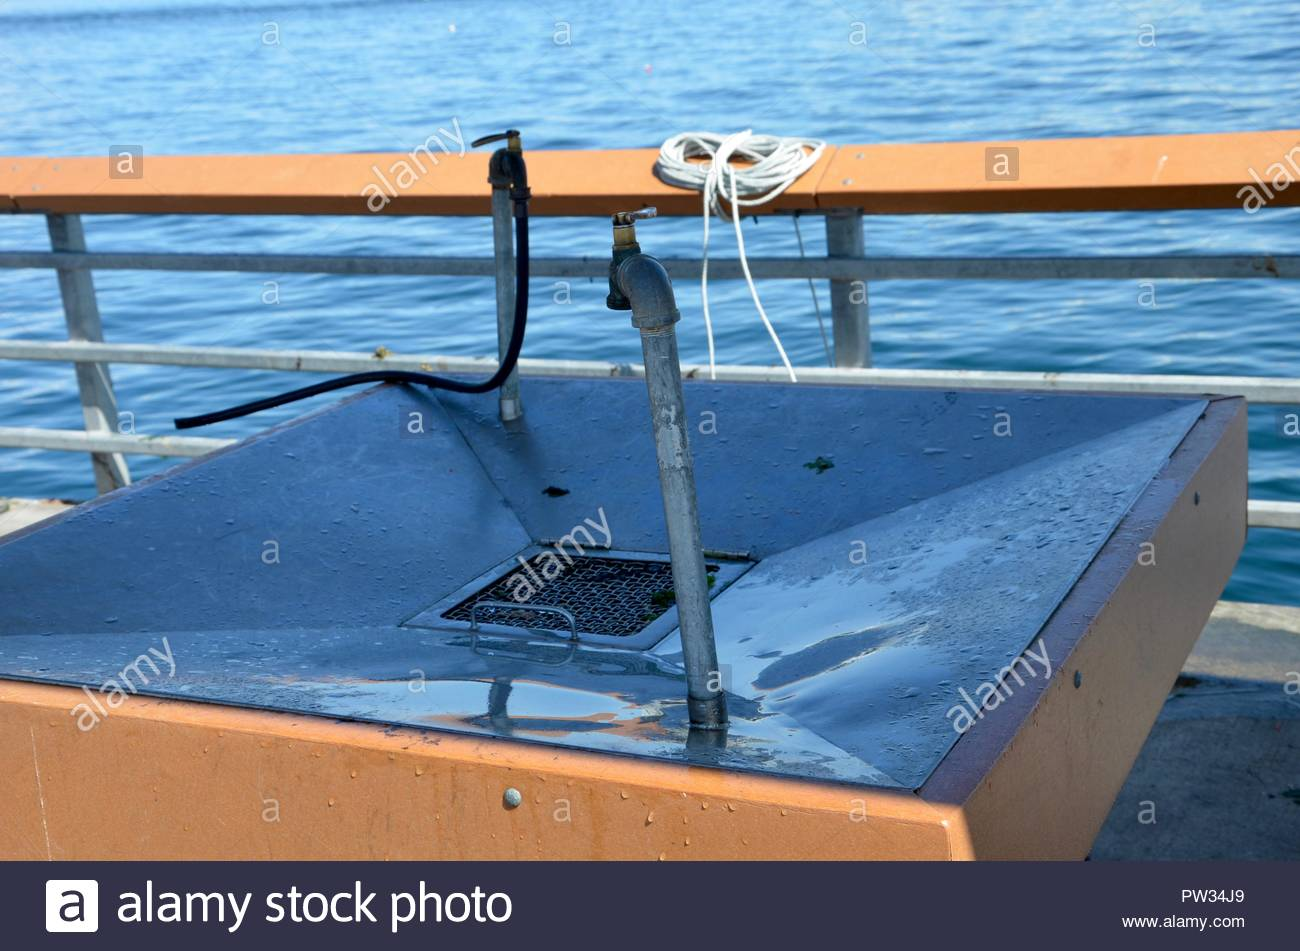 Wash basin for fish at harbor in Edmonds, Washington state, Pacific Coast, fishing, sea - Stock Image